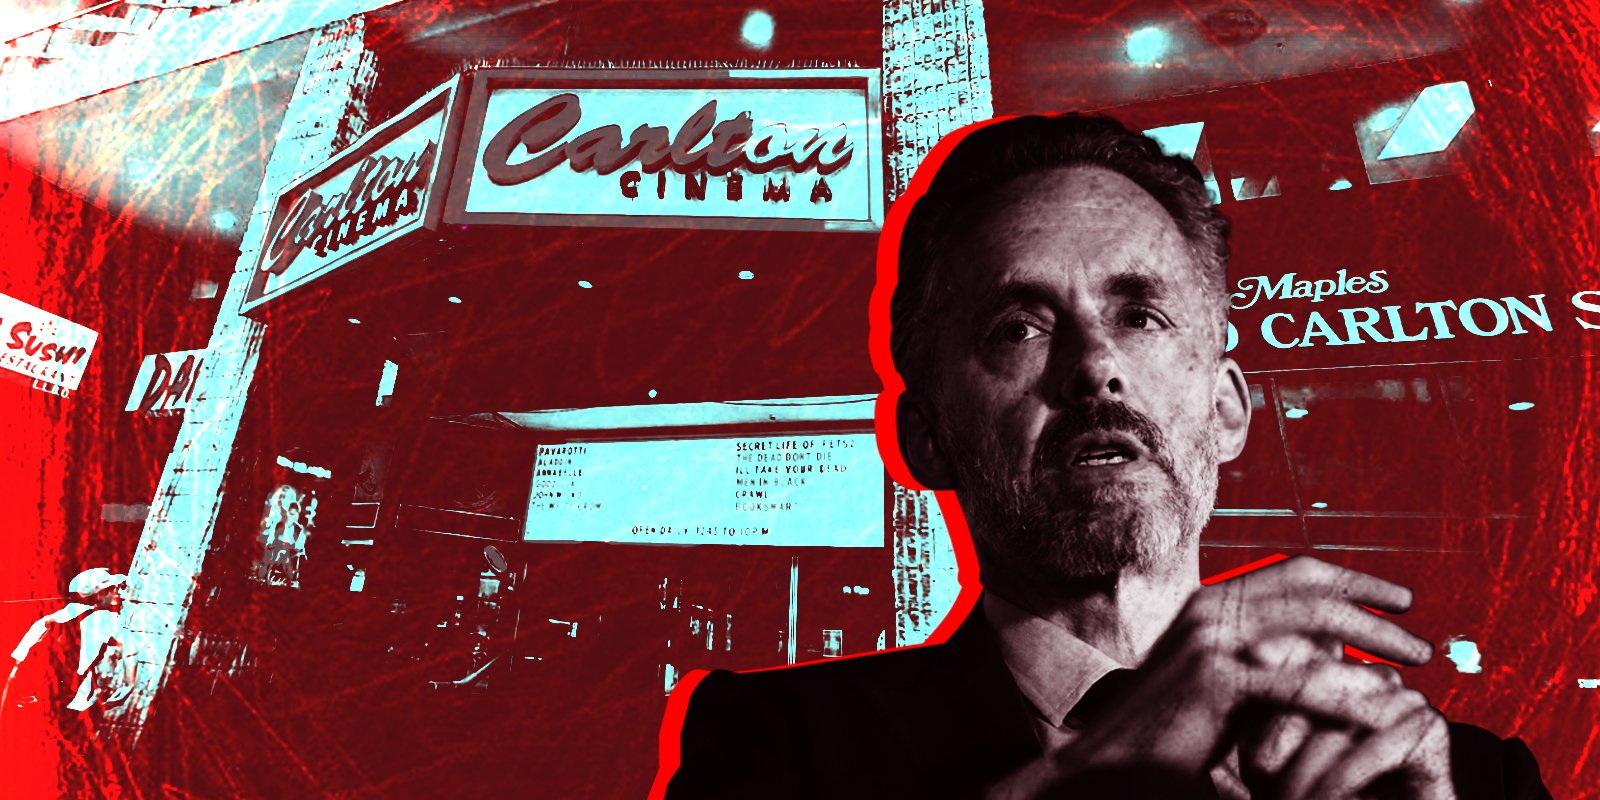 EXCLUSIVE: Jordan Peterson film cancelled in Canadian movie theatre